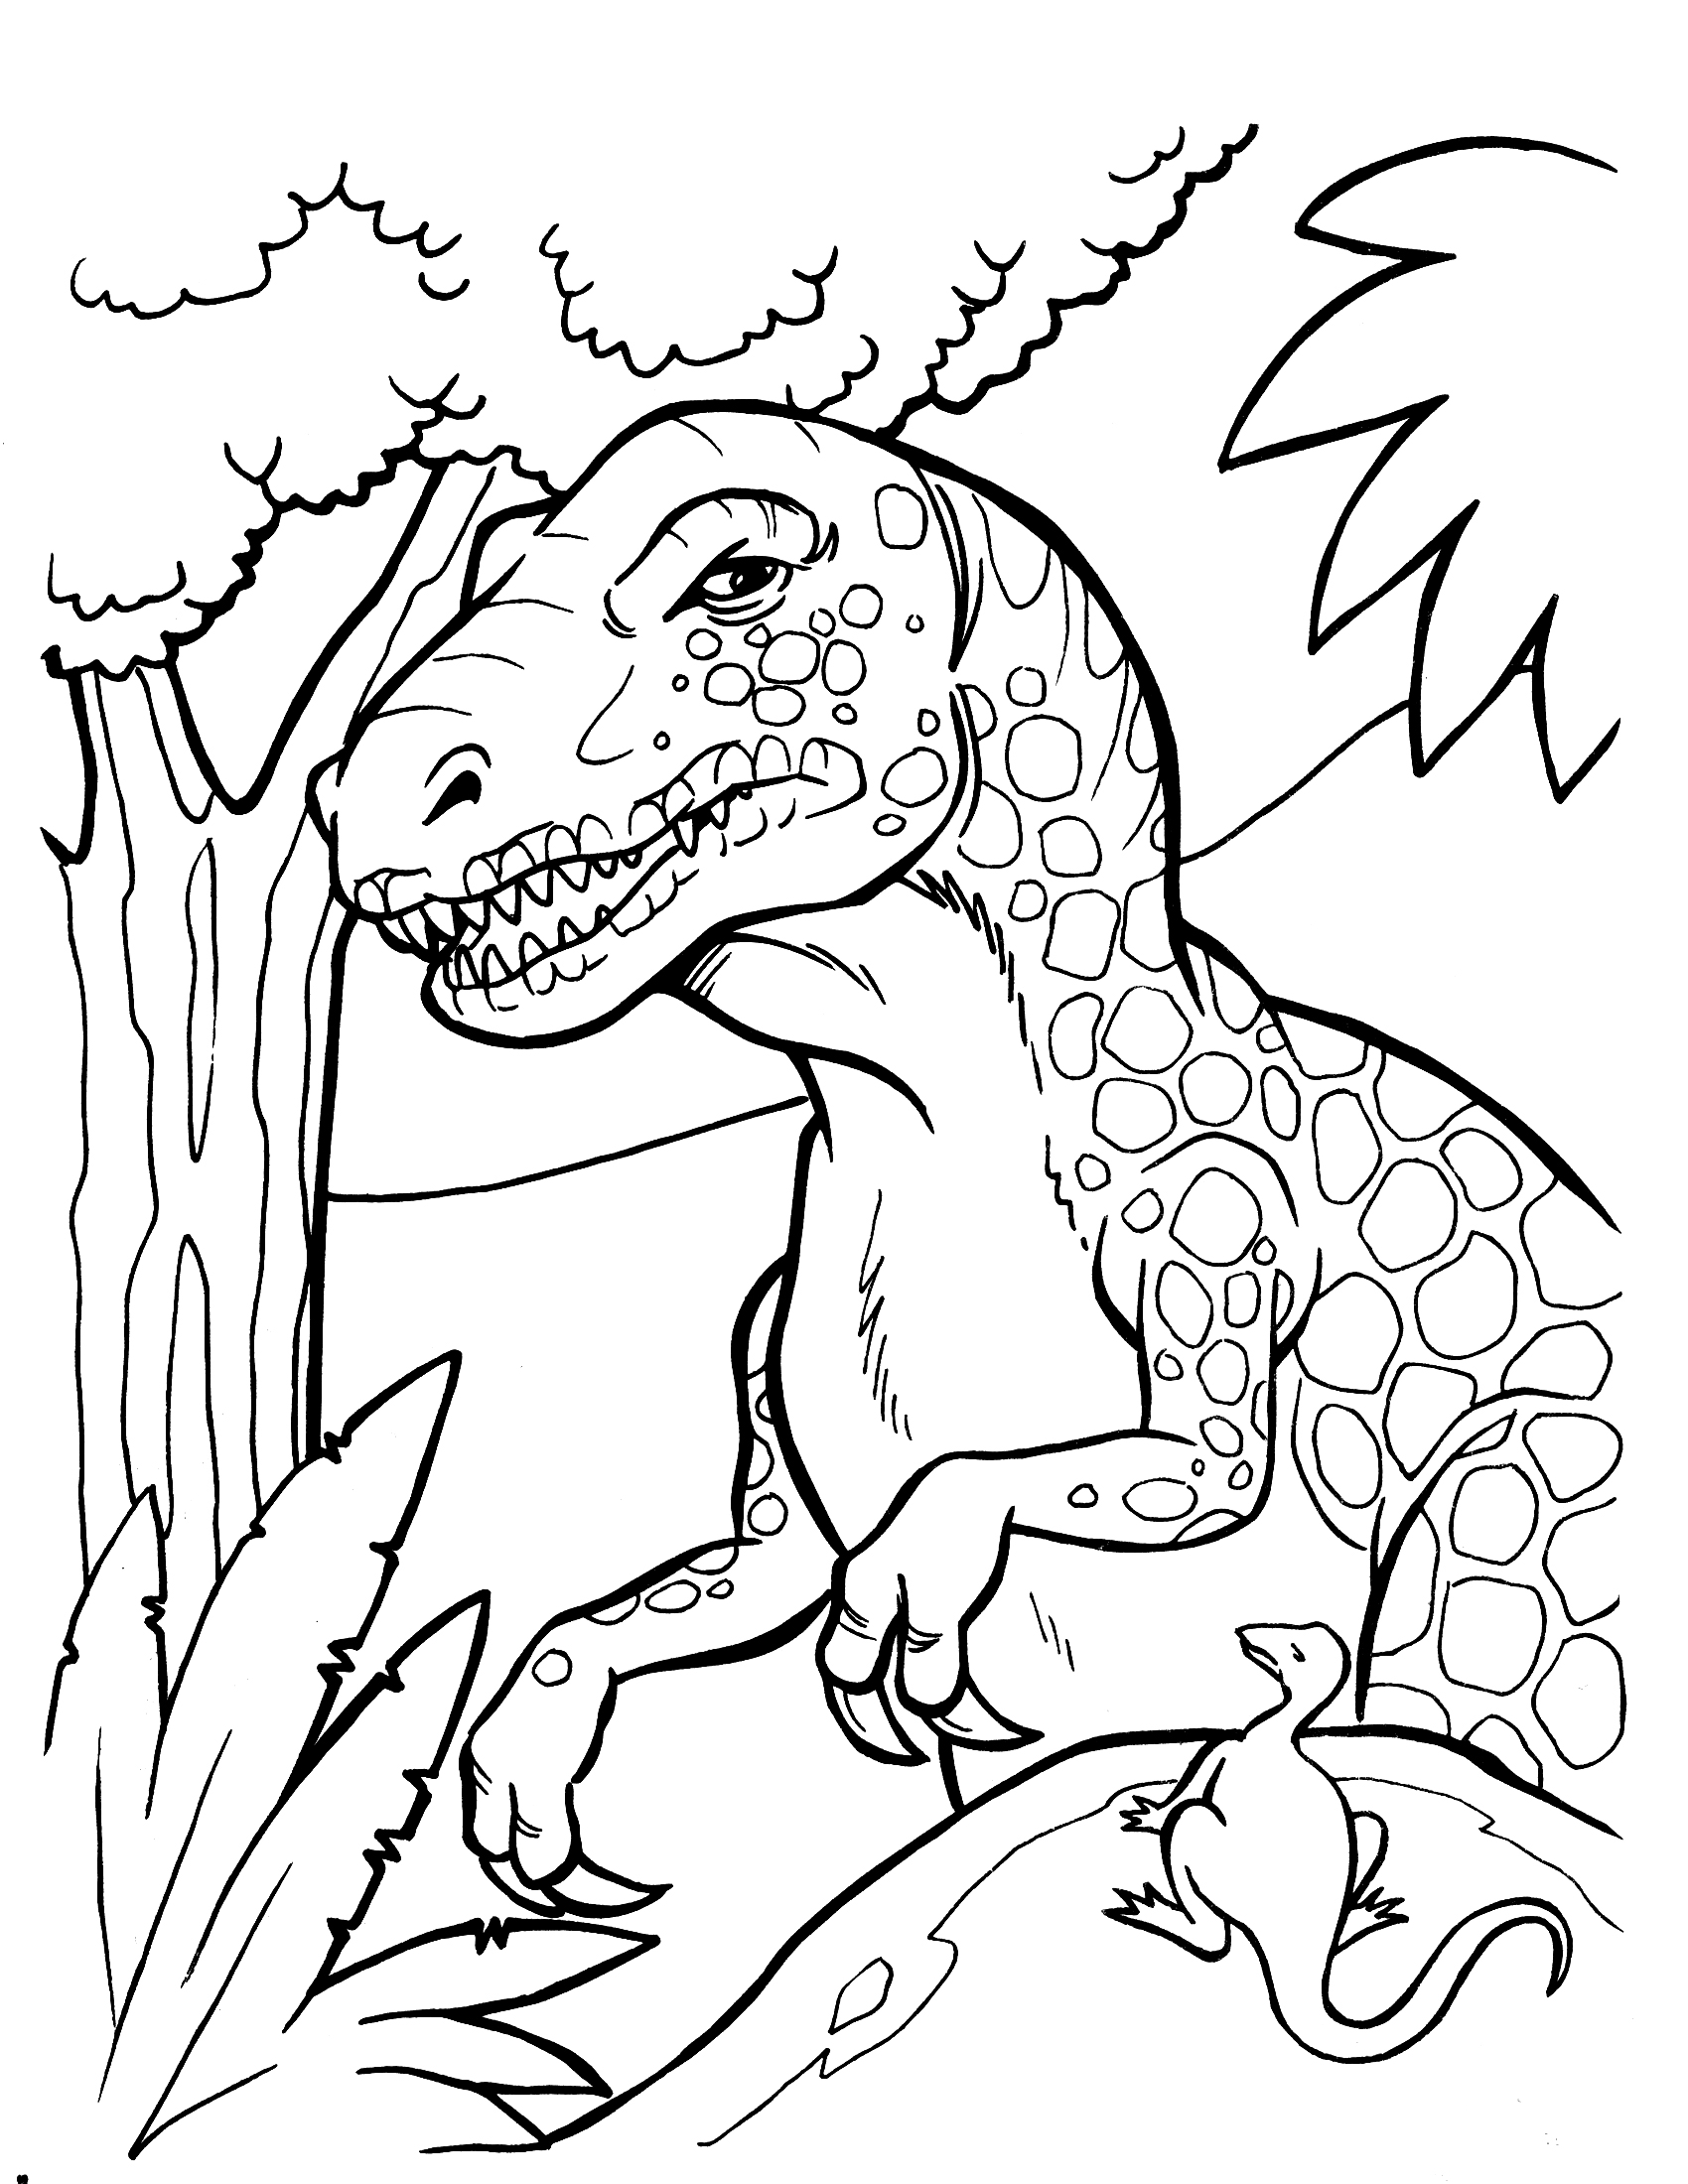 Dinosaur coloring pages 360coloringpages for Coloring pages to color online for free